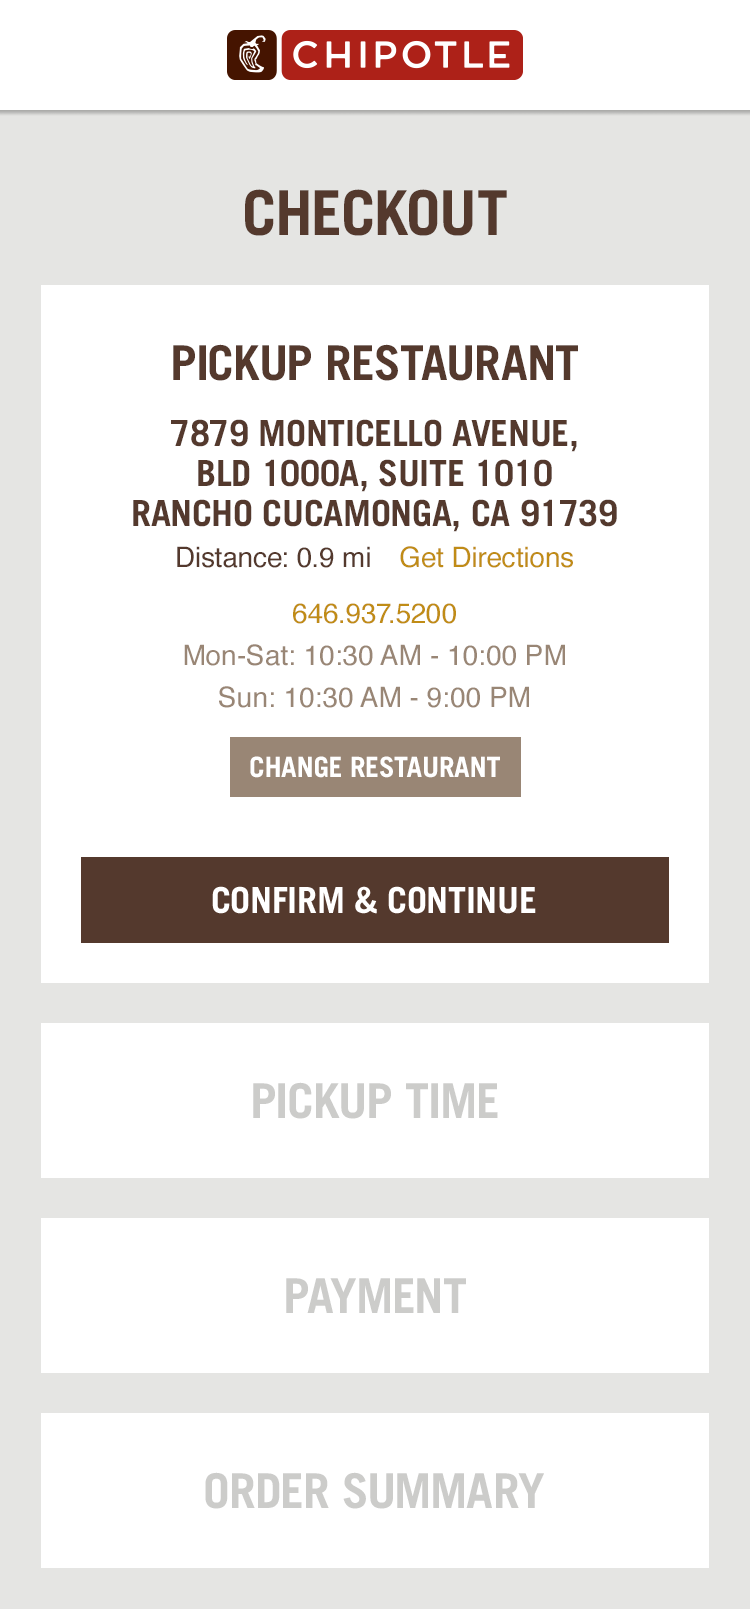 2_ROO_GroupOrder_Mobile_Checkout_Restaurant.png